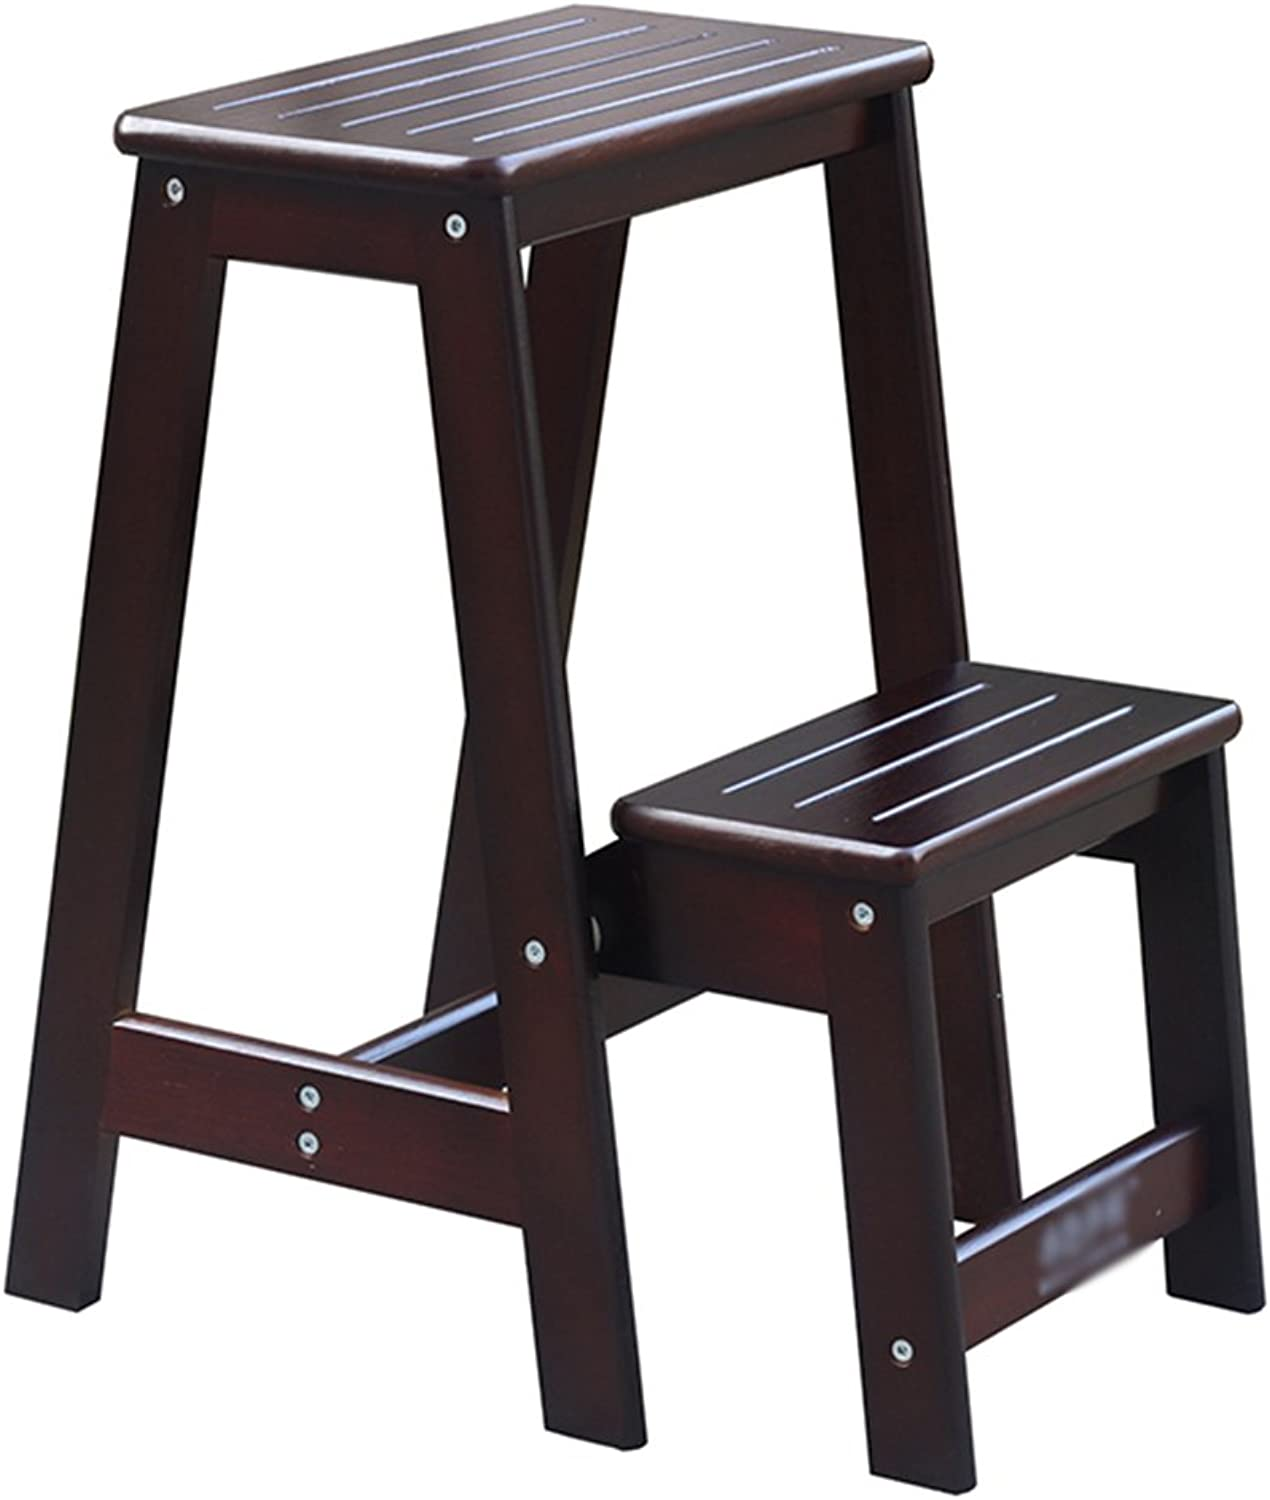 BLRYP Non-slip step stool Dual-use Pine Wood Ladder Stool 2 Step Non-Slip Tread Step Stepladder Stool,Changing shoes Stool Foldable Climb High Ladder Home Garden Kitchen Tool Staircase Stool,294855c